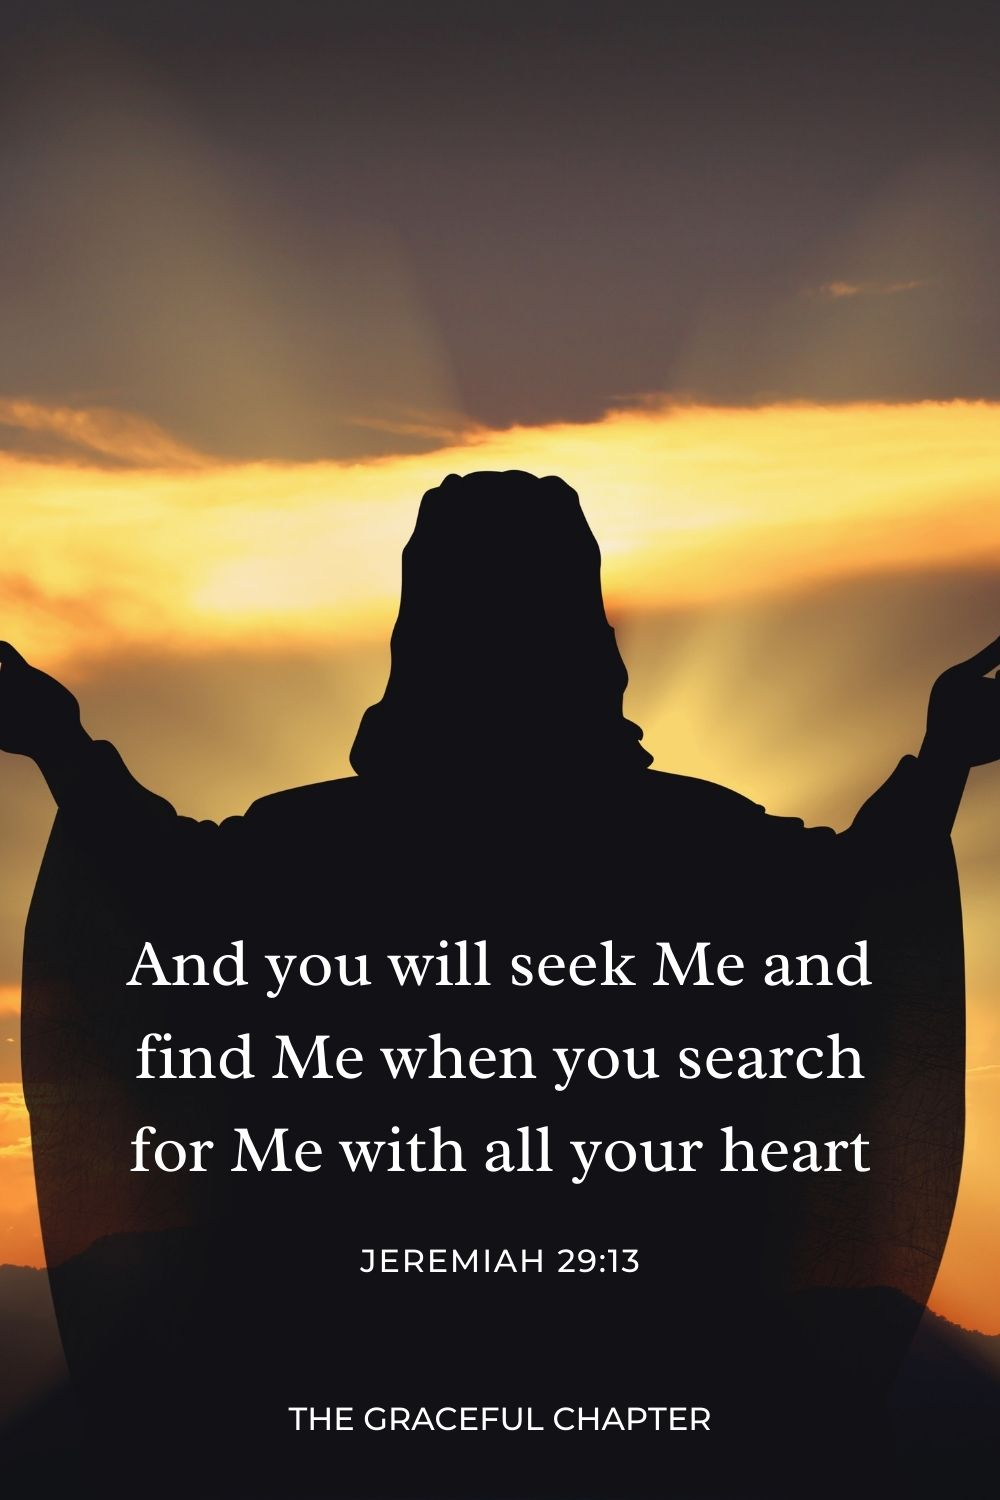 And you will seek Me and find Me, when you search for Me with all your heart. Jeremiah 29:13